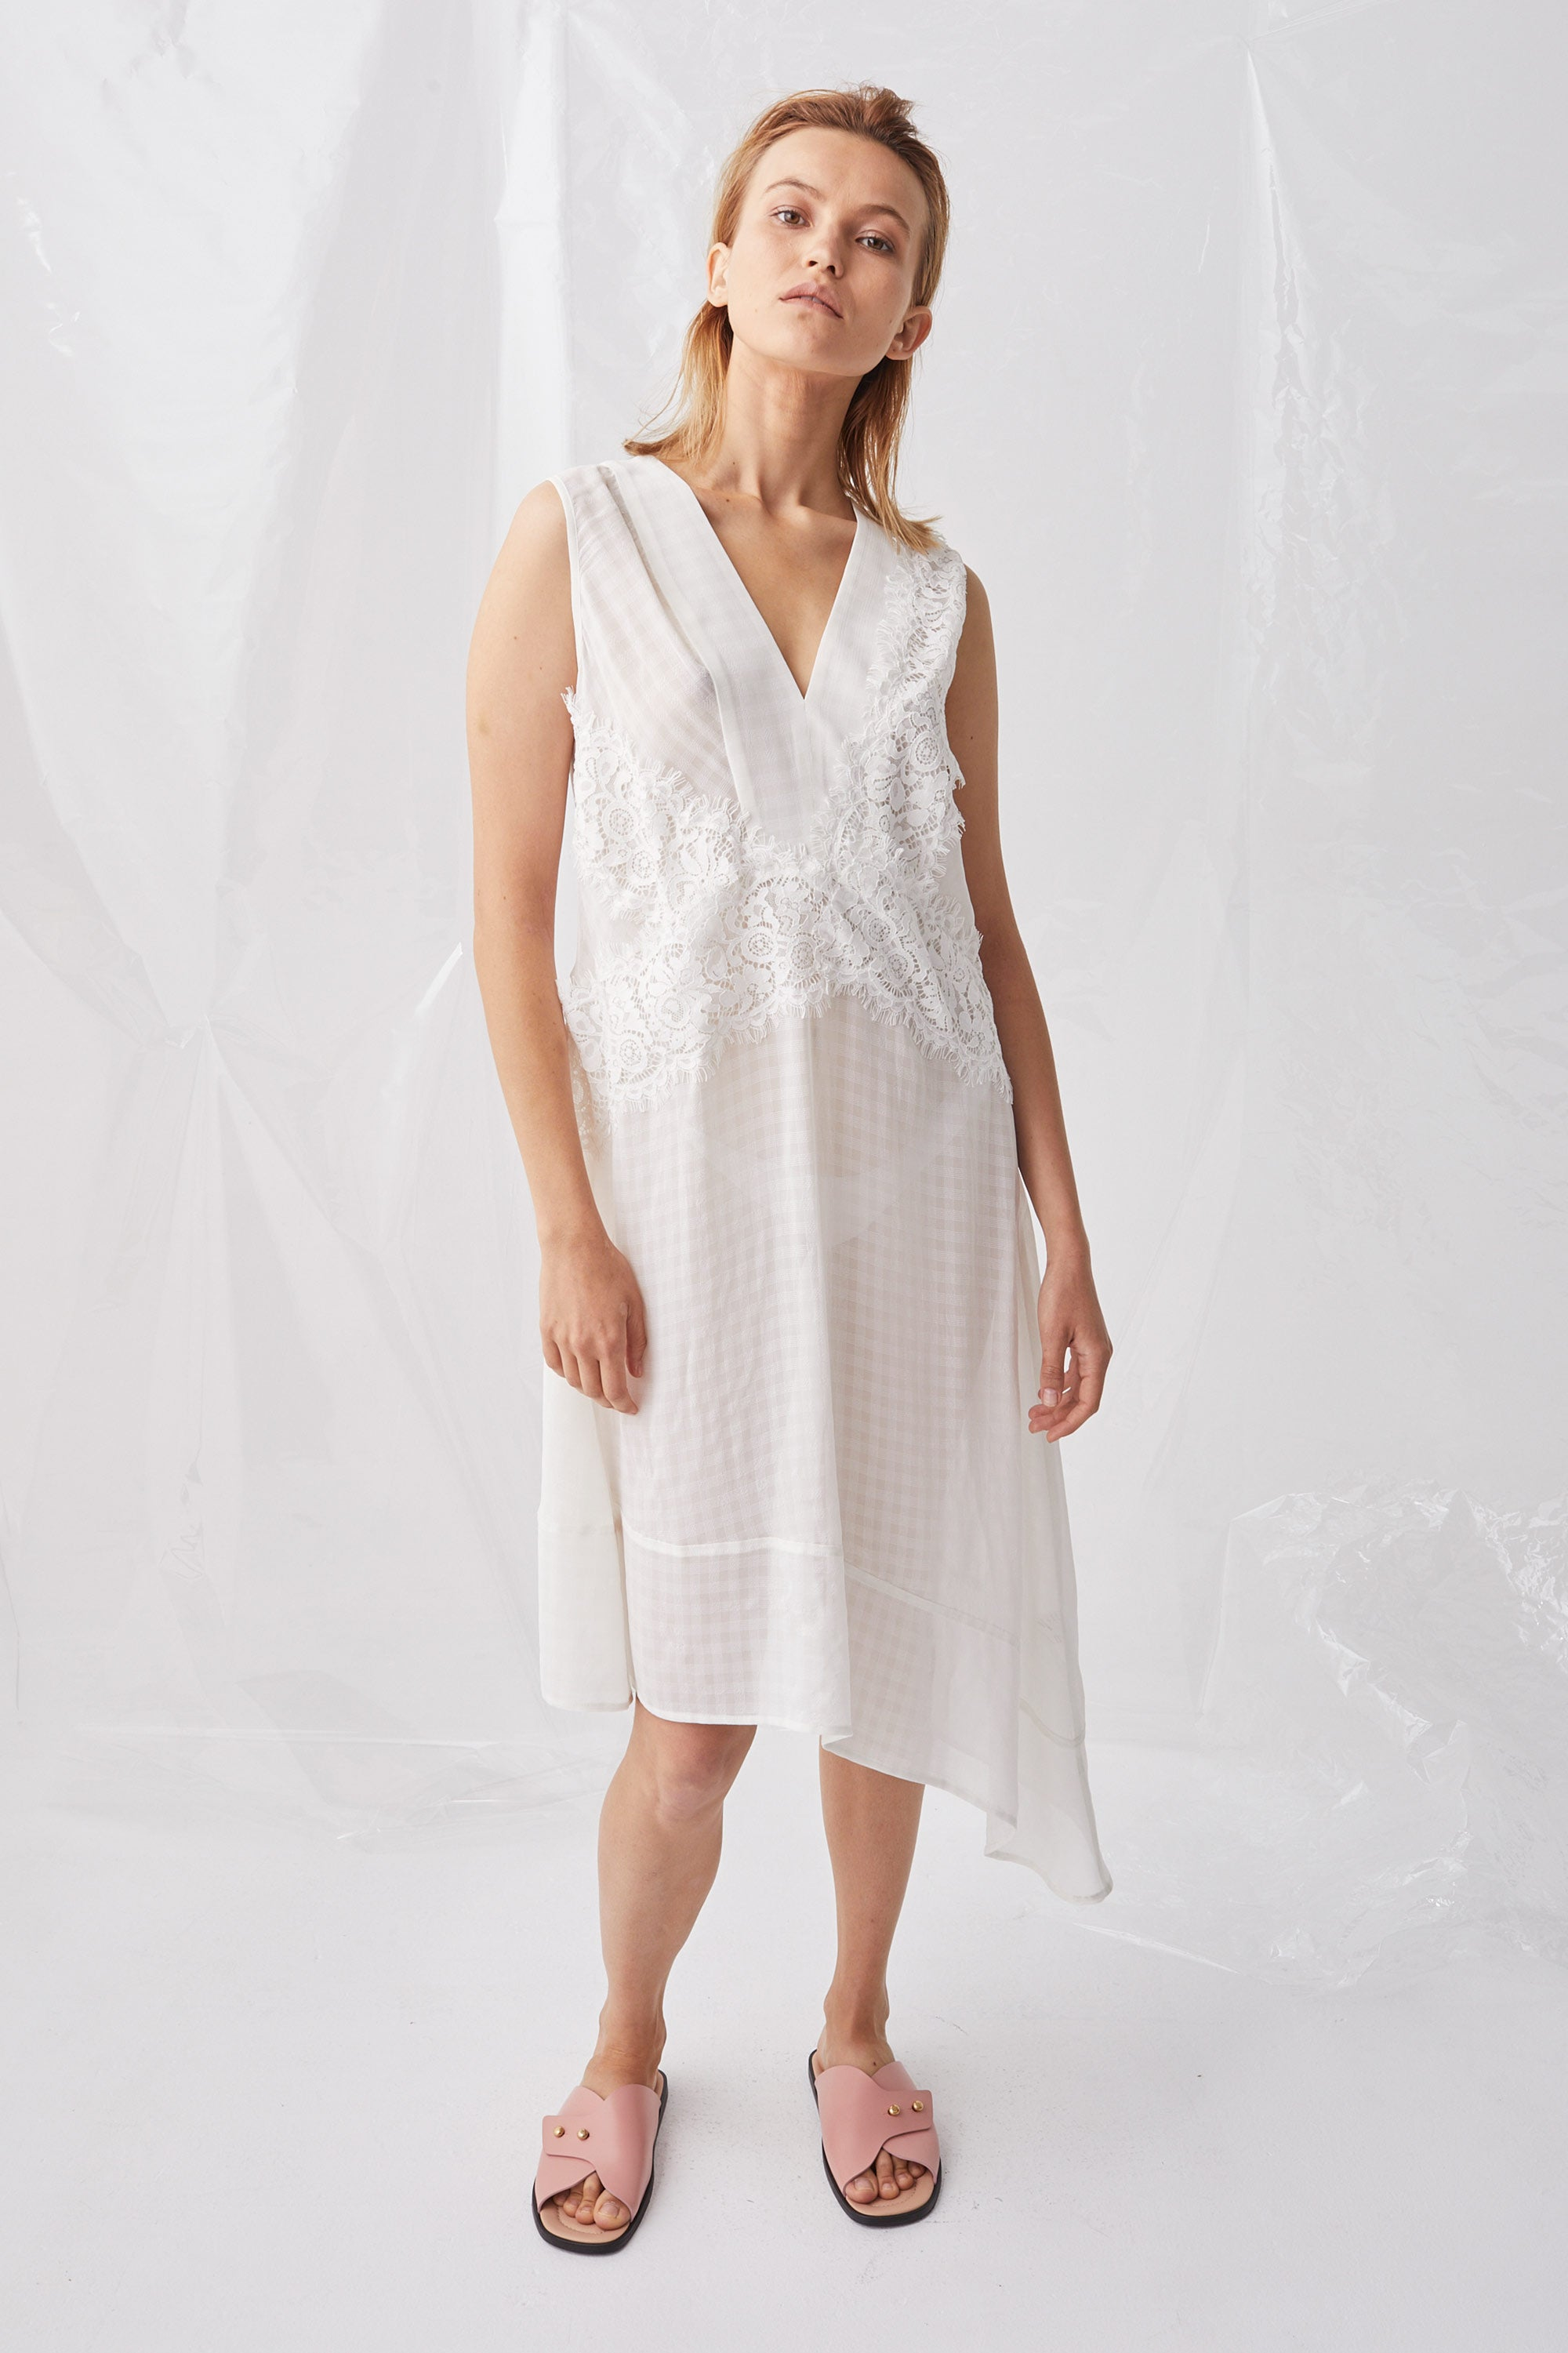 Ricochet NZ Fashion Designer Clothing Boutique SS18 Yoichi Dress Check Asymmetrical Made in NZ